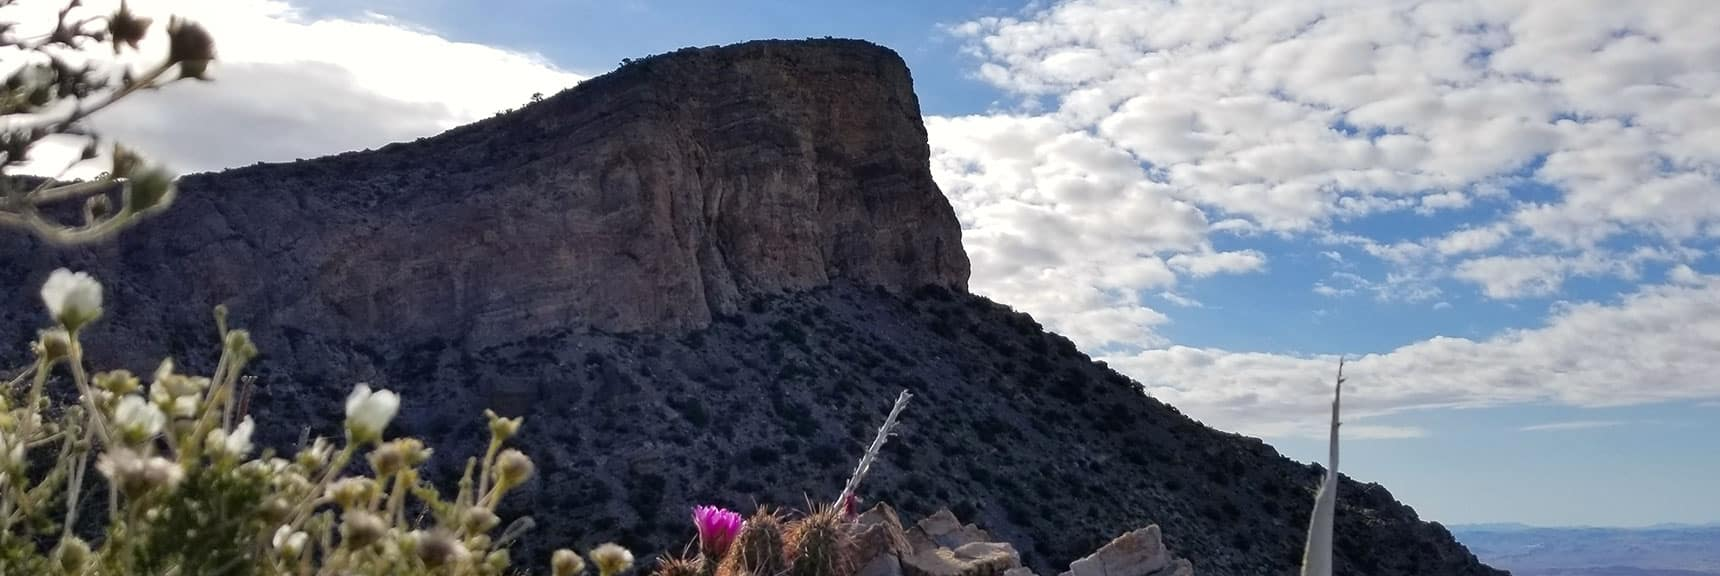 Turtlehead Peak View from Upper Saddle in Red Rock Park, Nevada